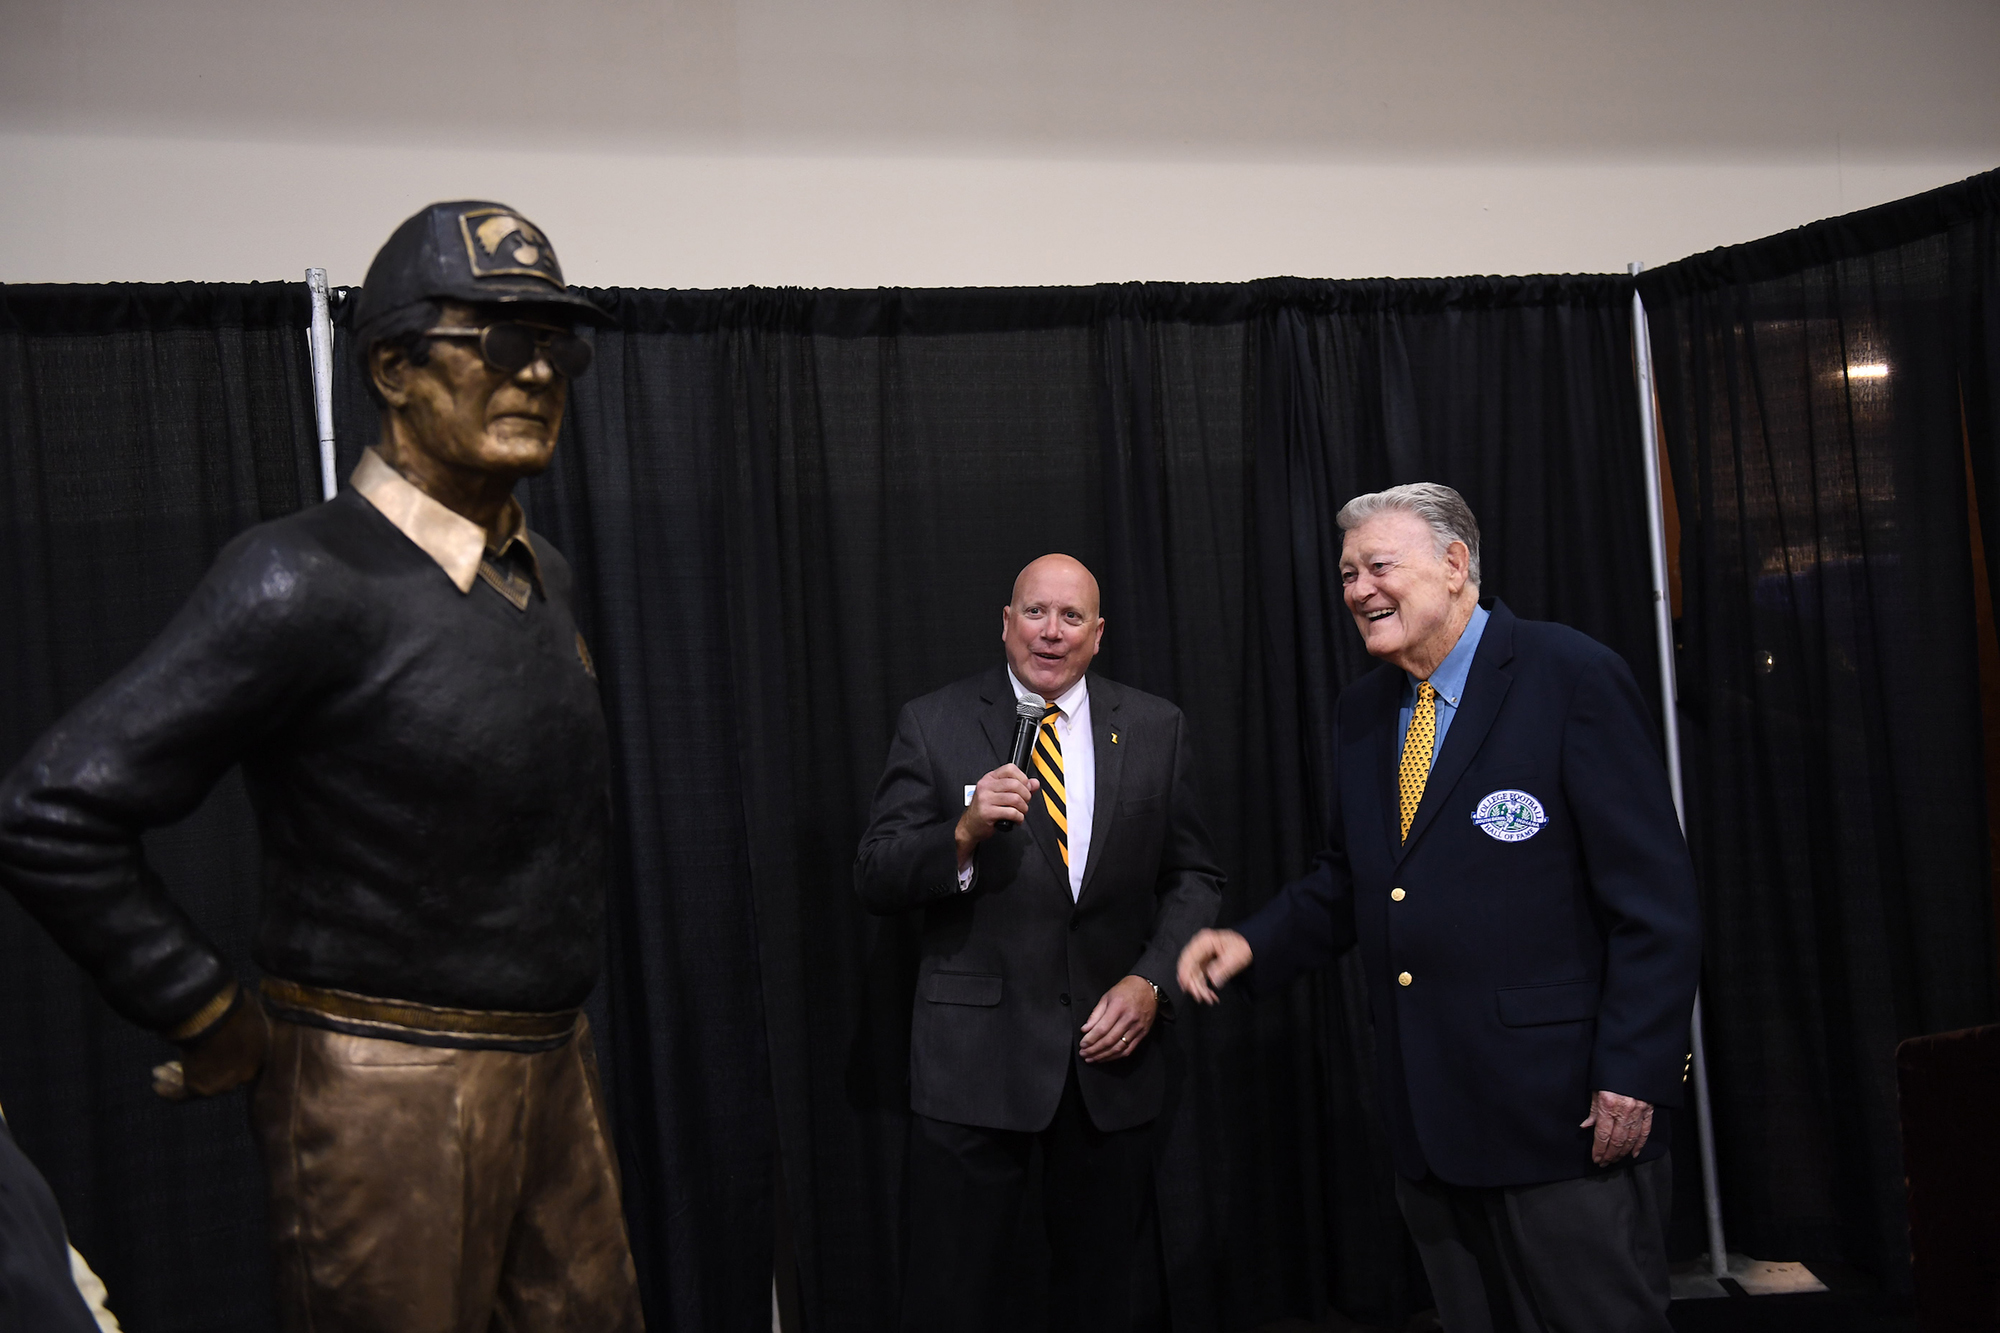 Hayden Fry at the unveiling of a statue in his honor